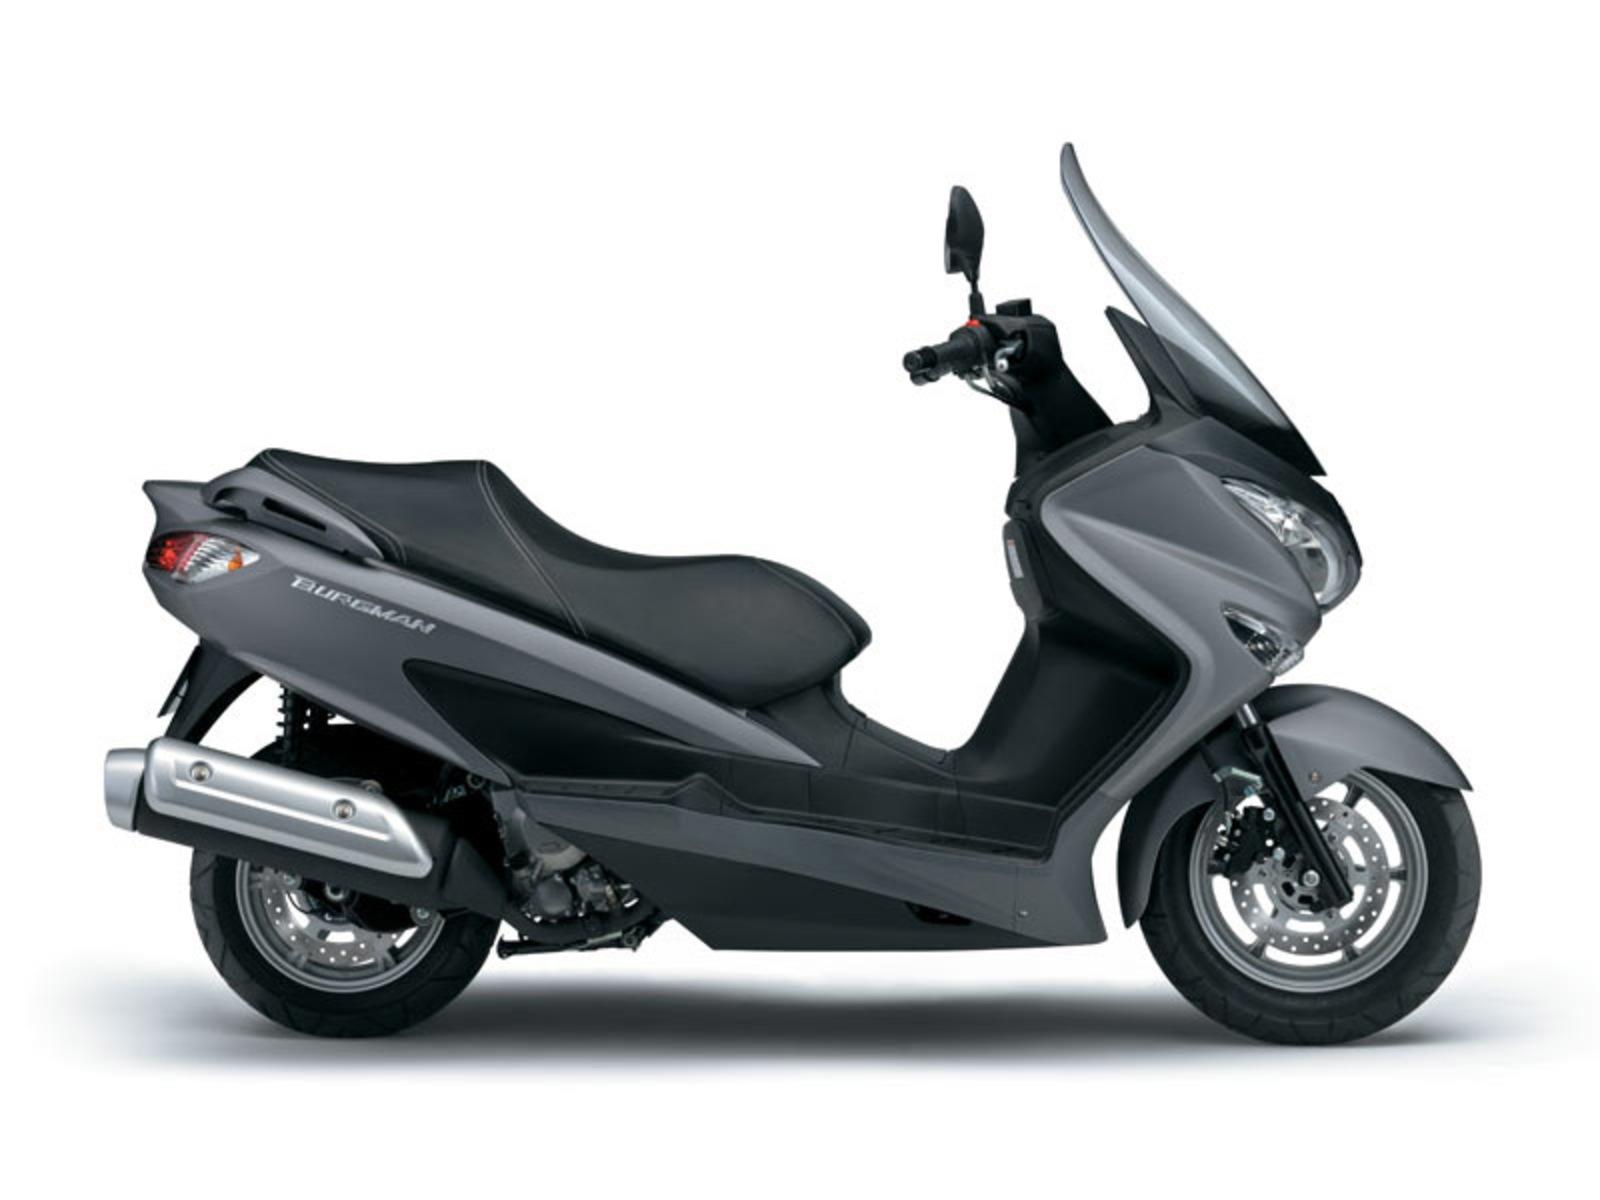 2014 suzuki burgman 125 review top speed. Black Bedroom Furniture Sets. Home Design Ideas